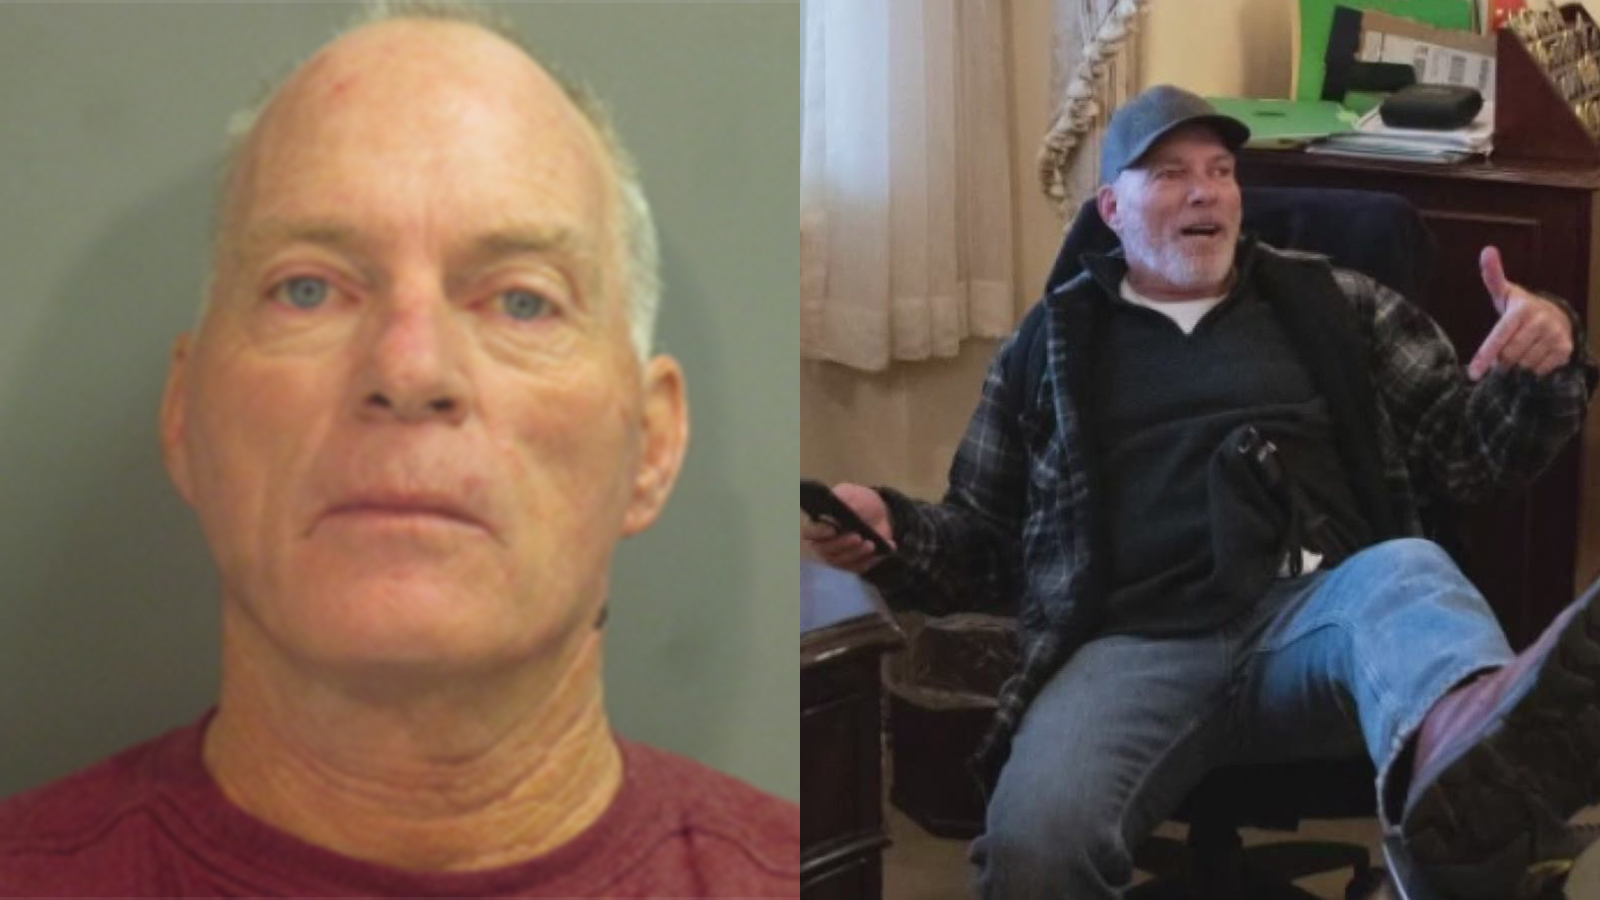 Man pictured in Pelosi's office turns himself in to authorities in Arkansas | WGN-TV